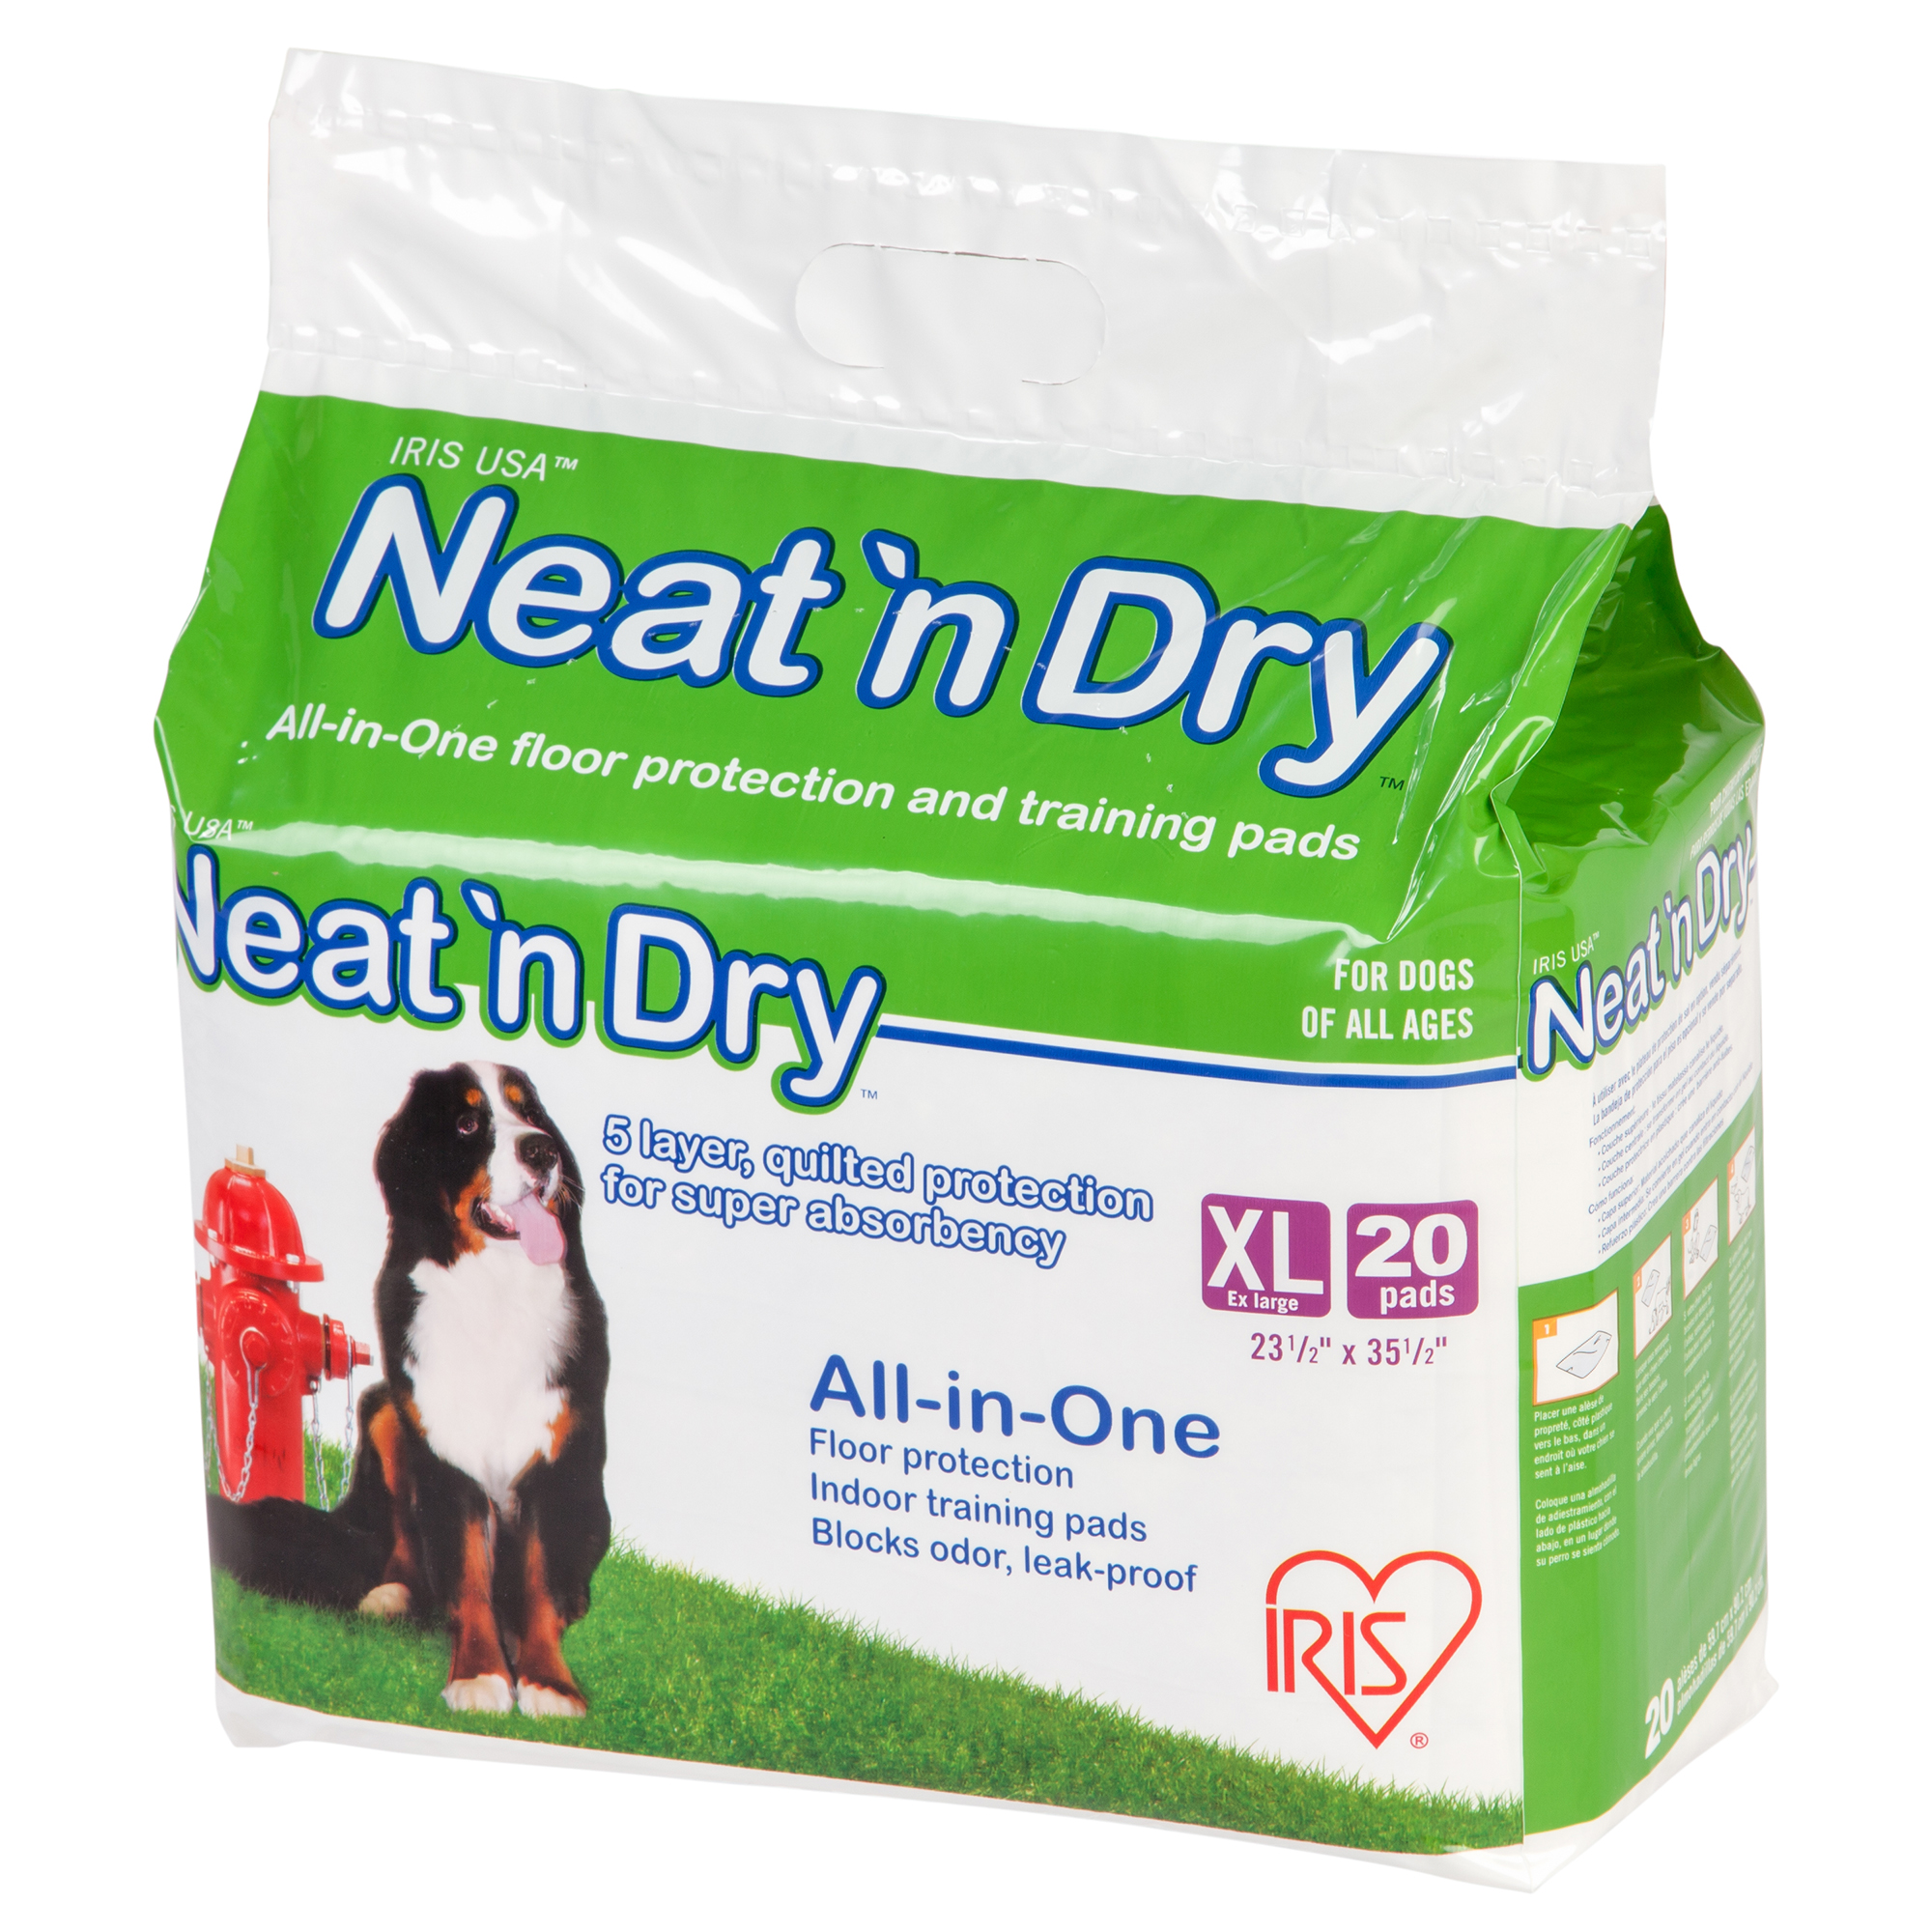 IRIS Neat 'n Dry Premium Pet Training Pads, Extra Large, 20 Count